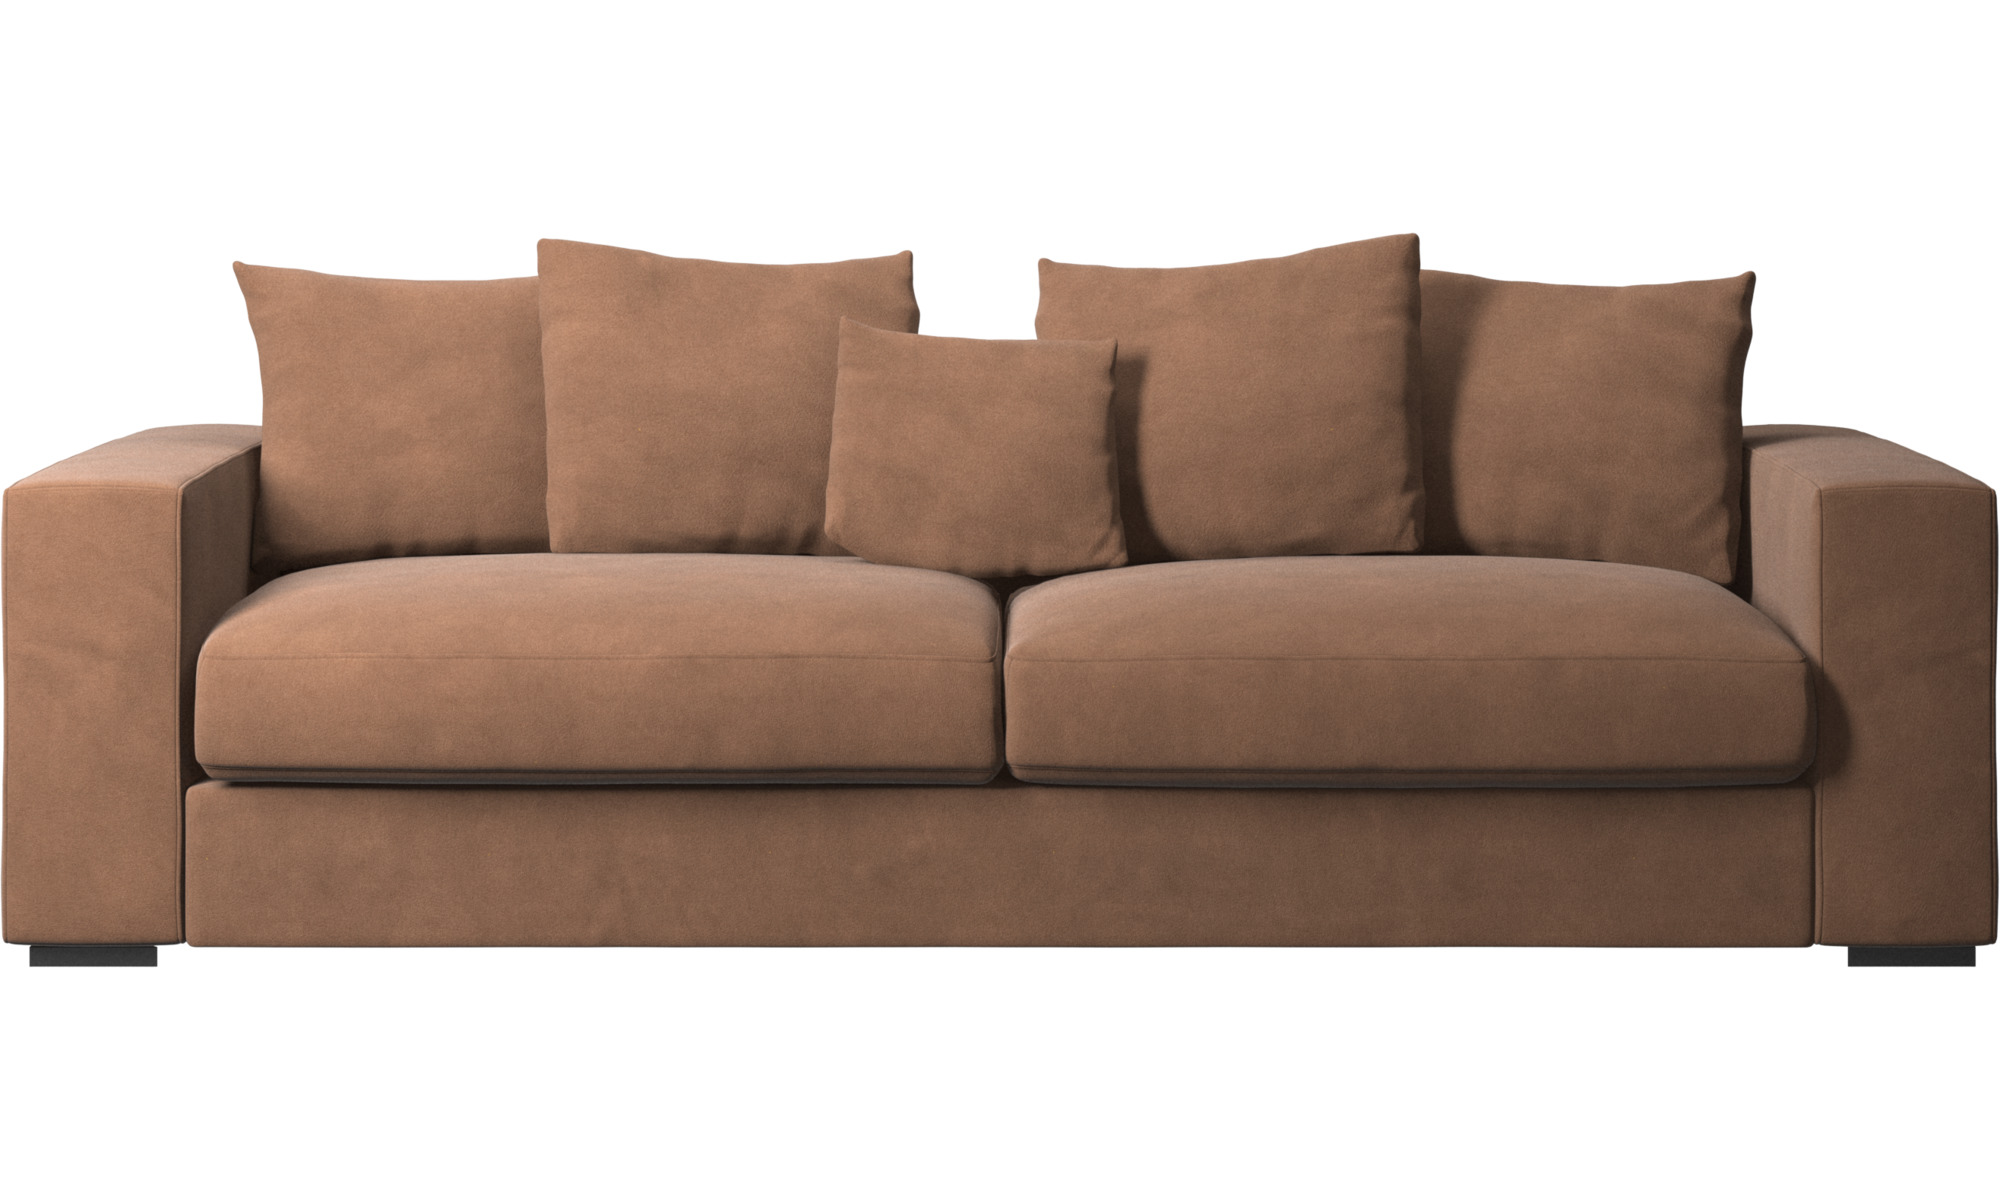 3 seater sofas cenova sofa boconcept for Divan furniture